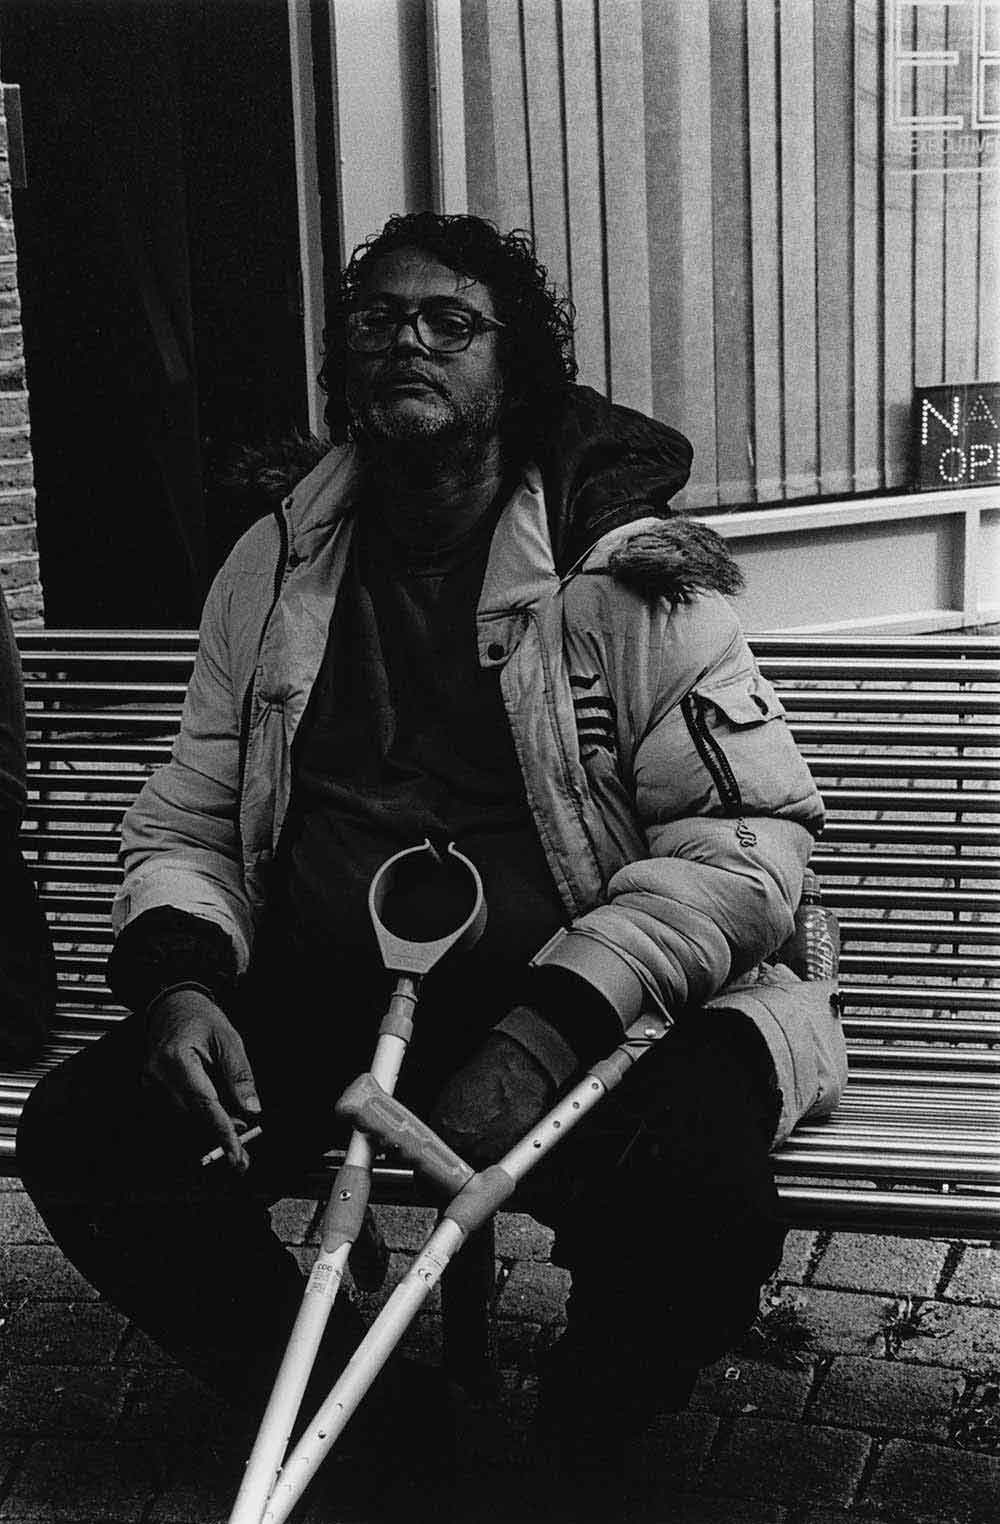 Man with crutches smoking a cigarette on a street bench, part of a series of photographs by Stephie Devred that captures the unique spirit of the East London street market, Roman Road Market.